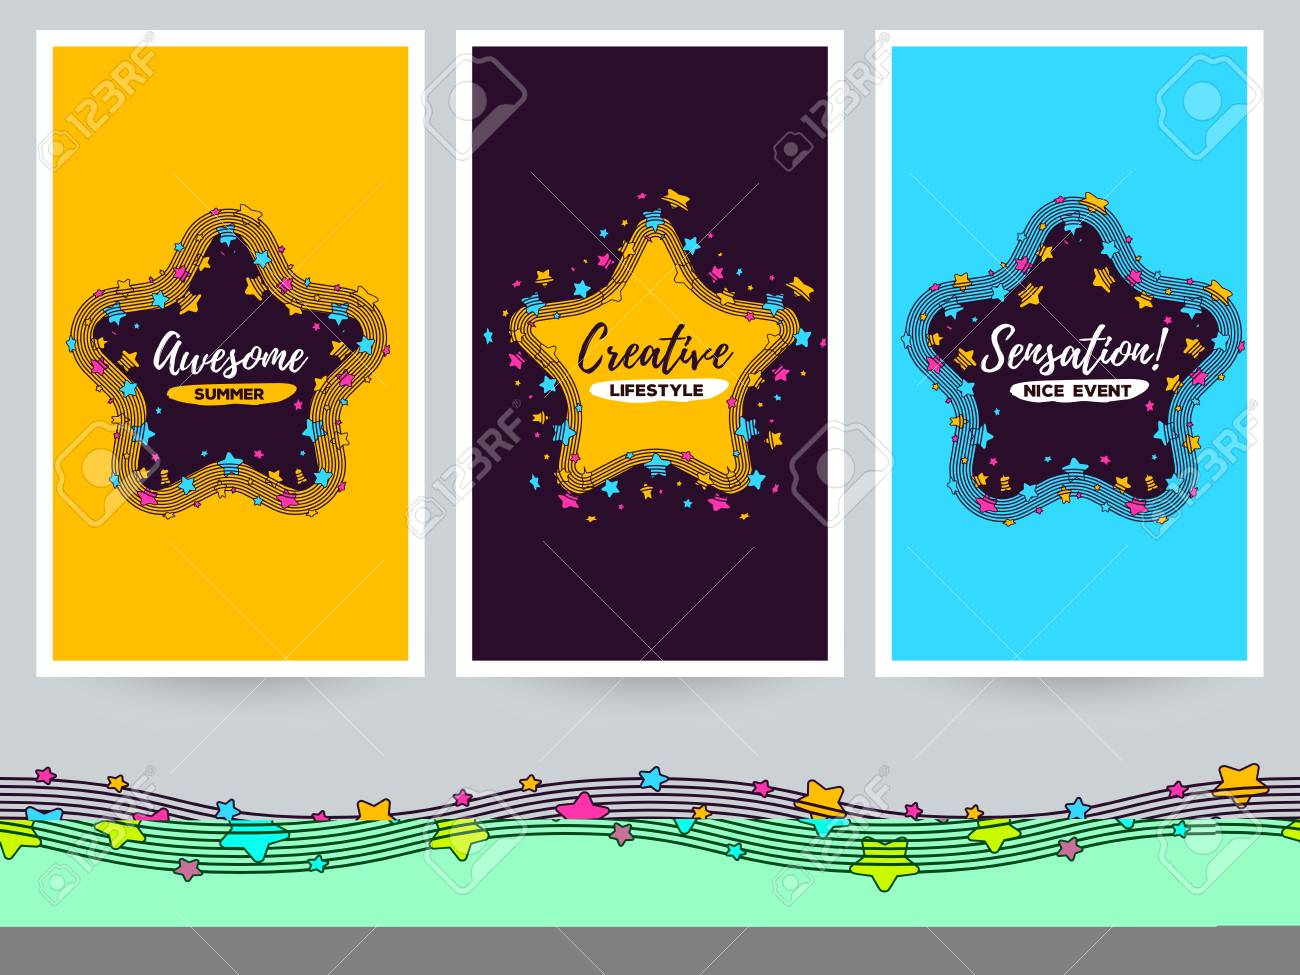 vector template with illustration of big star with a wave along